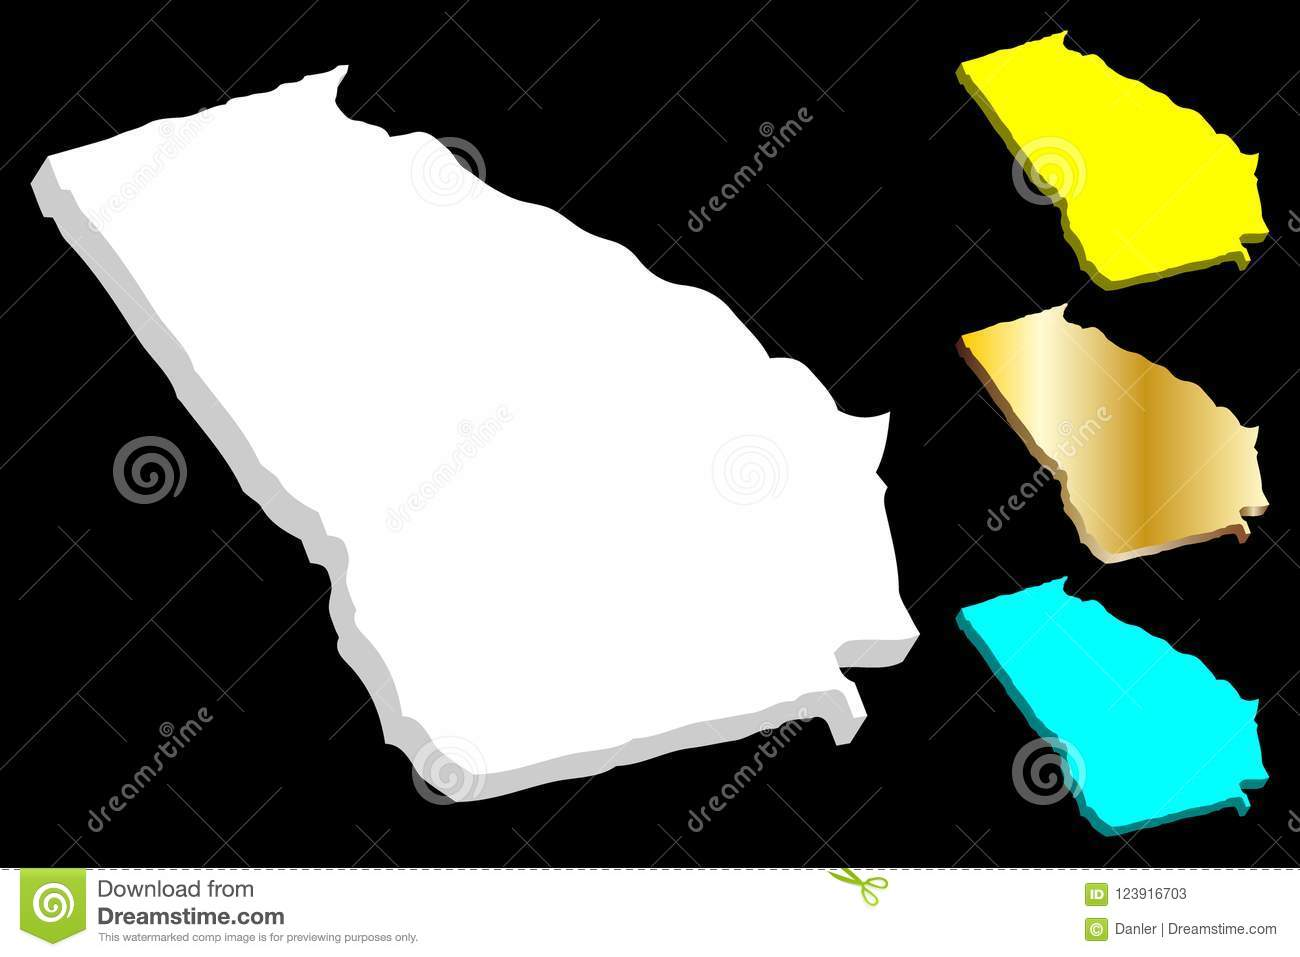 State Map Of Georgia Usa.3d Map Of Georgia U S State Stock Vector Illustration Of Boundary